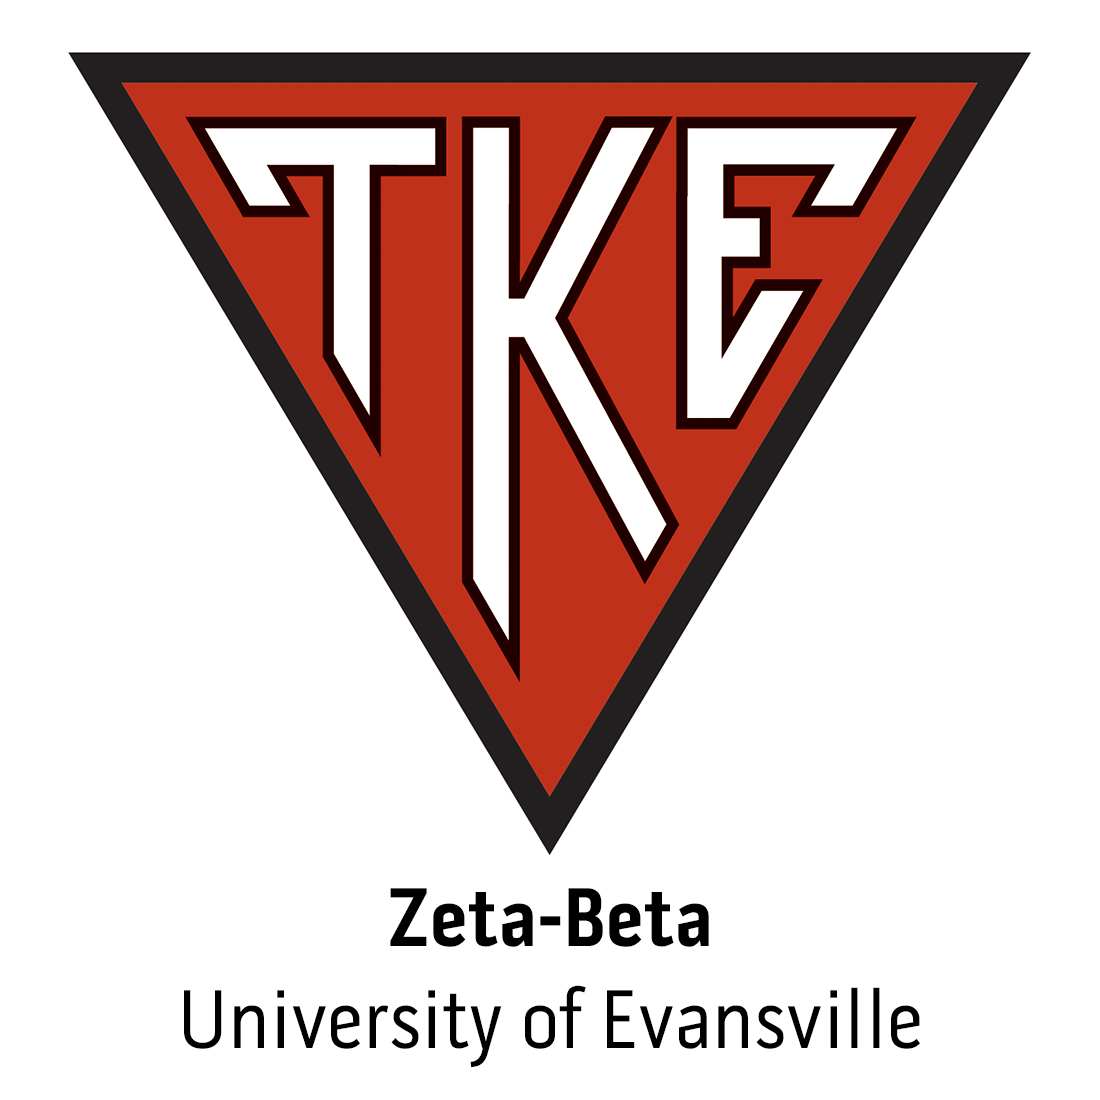 Zeta-Beta Chapter at University of Evansville